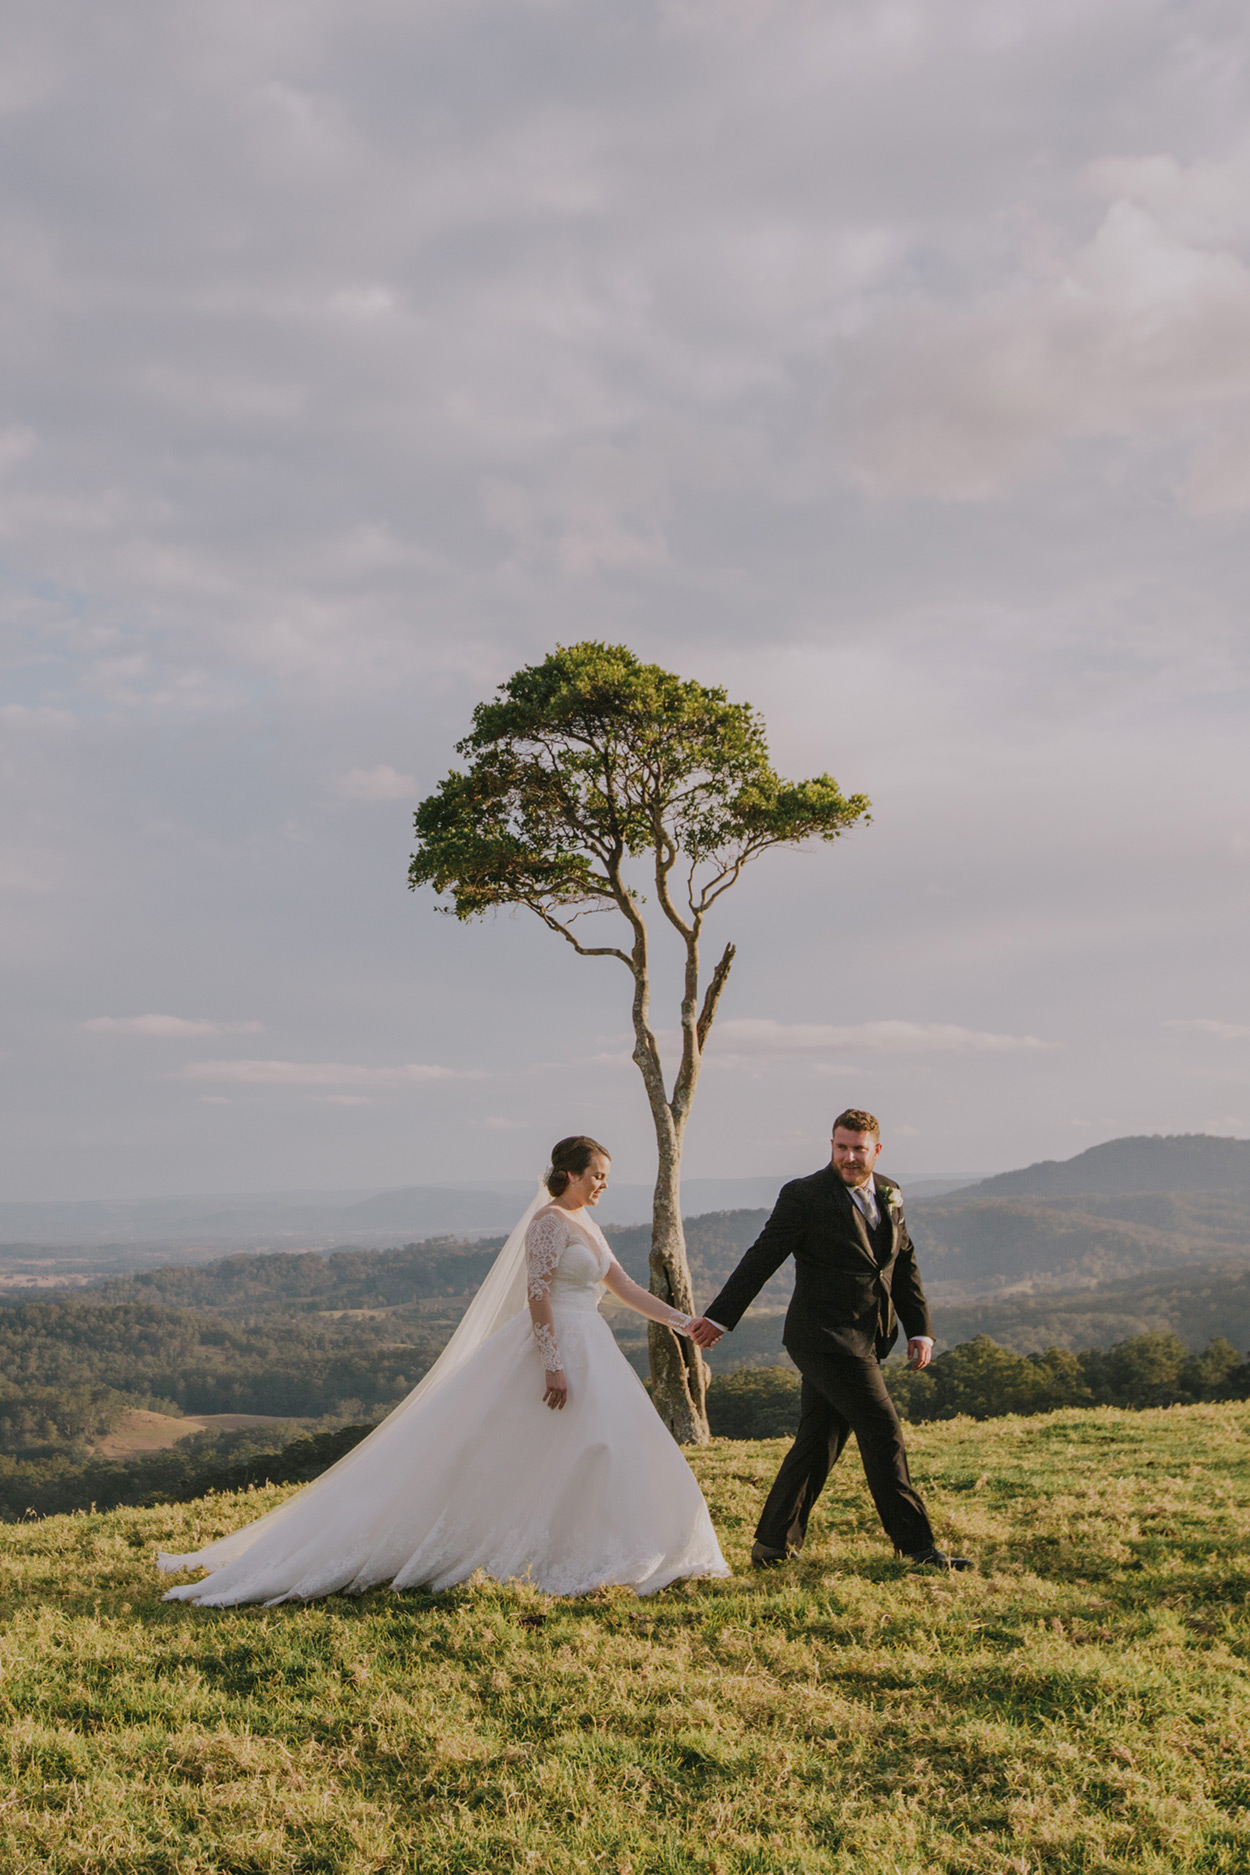 Maleny One Tree Hill Moments Wedding Photographer - Sunshine Coast, Queensland, Australian Destination Elopement